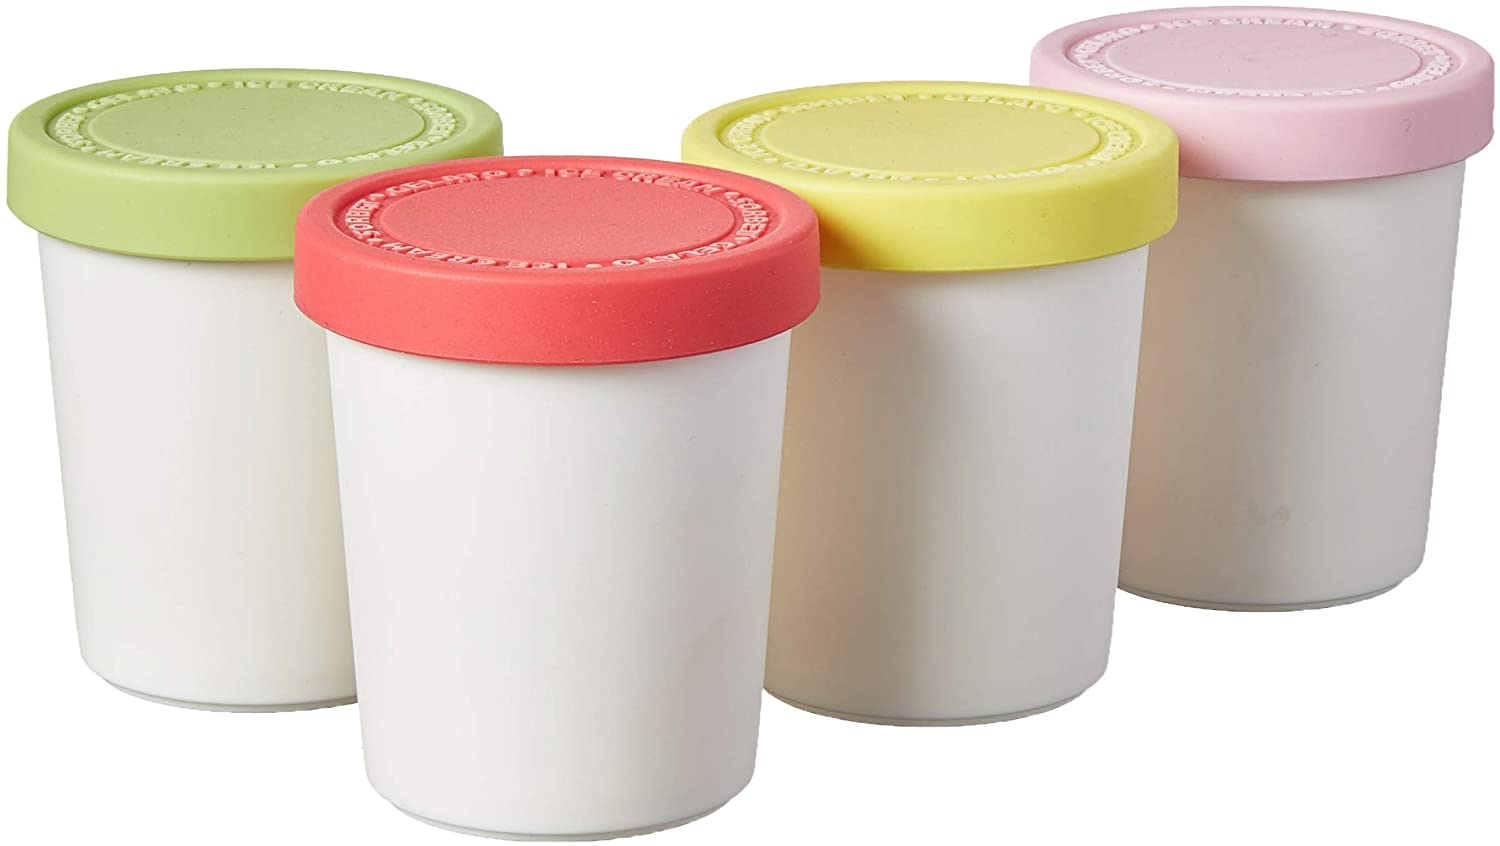 Sumo Dishwasher Safe Homemade Ice Cream Container